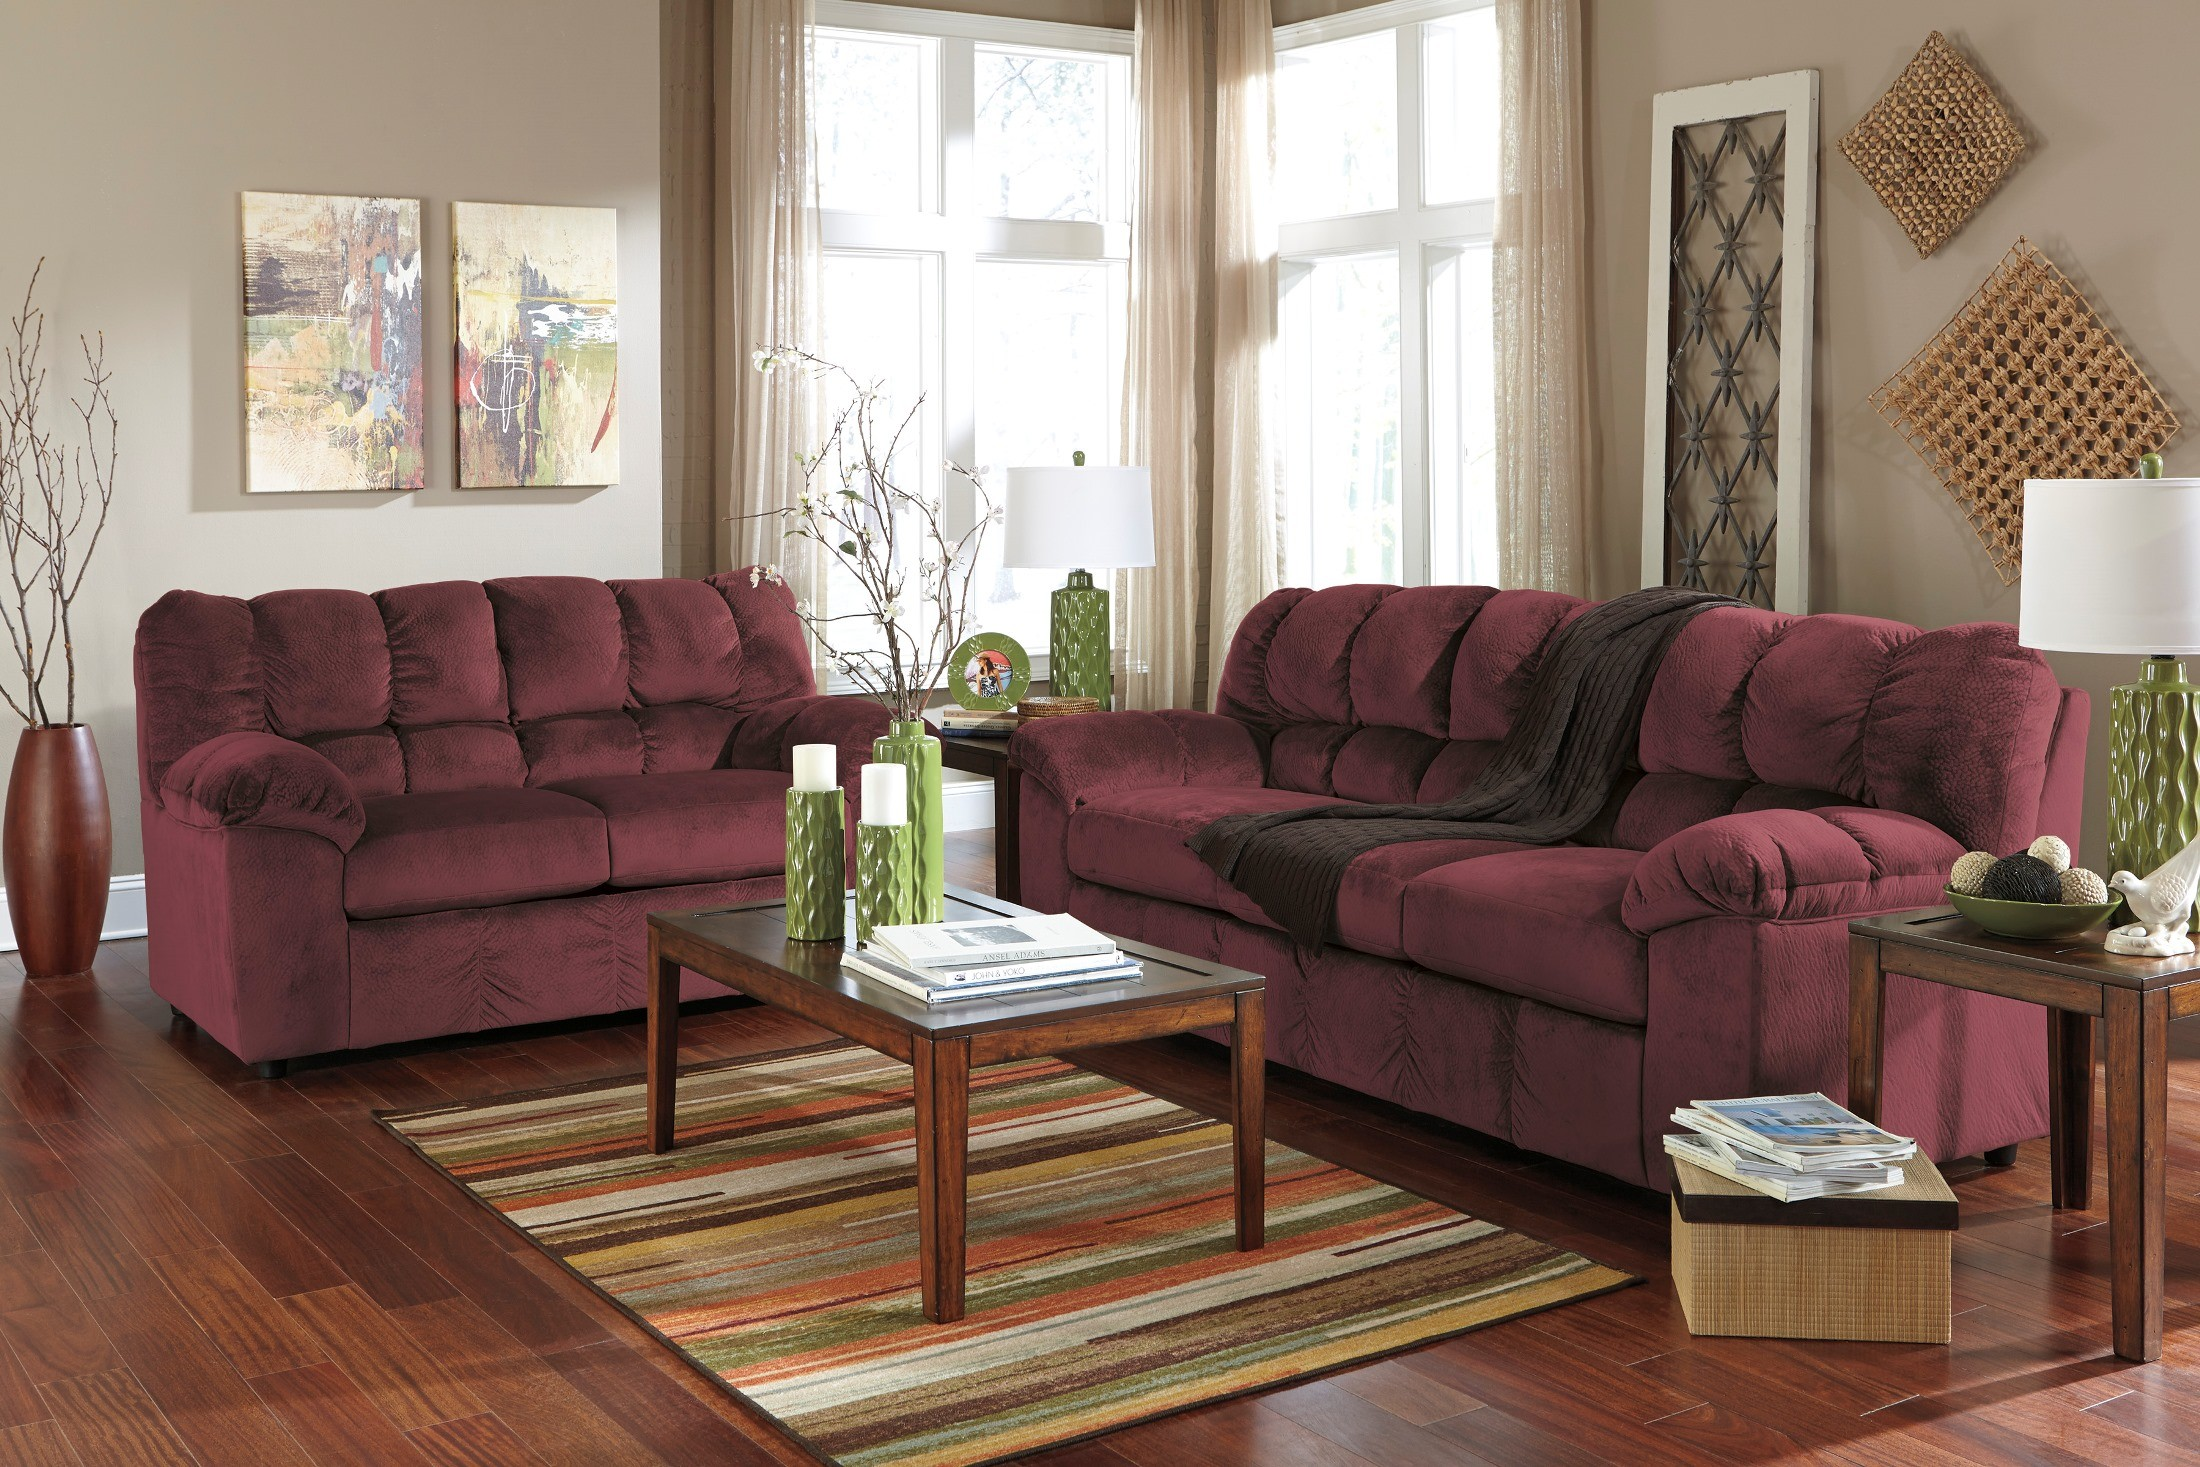 Living Room Furniture: Julson Burgundy Living Room Set From Ashley (26602-38-35